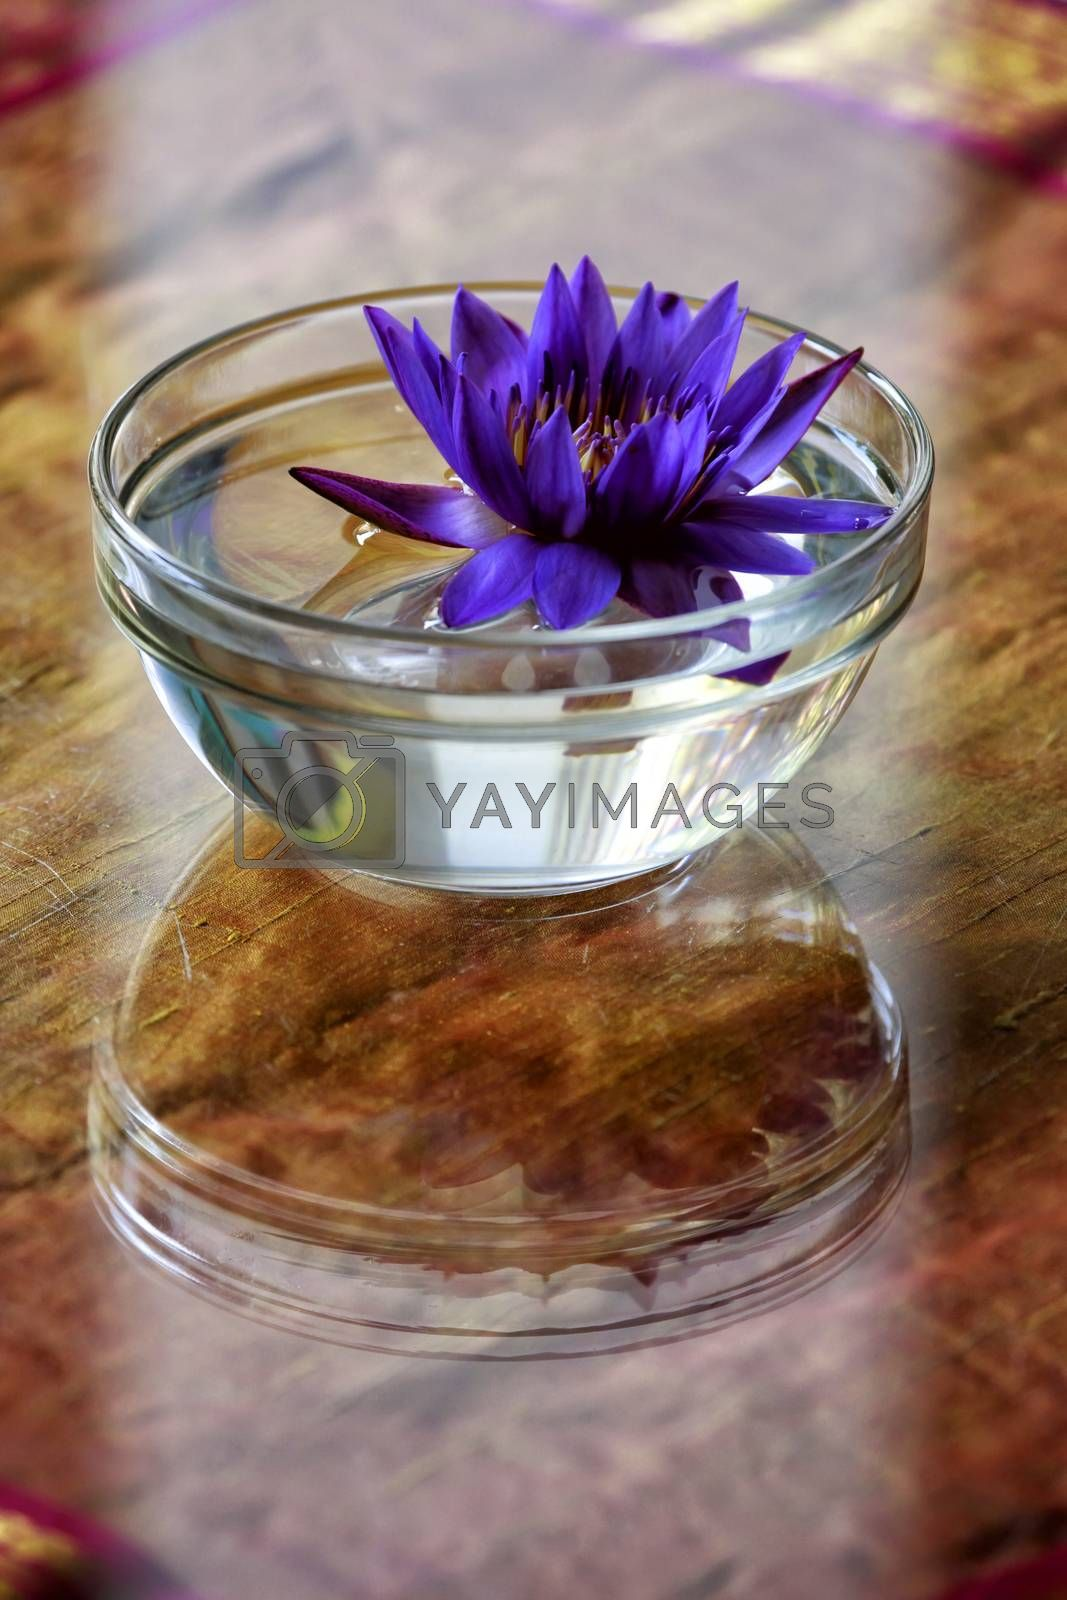 Lotus flowers in a glass of water used to decorate the table